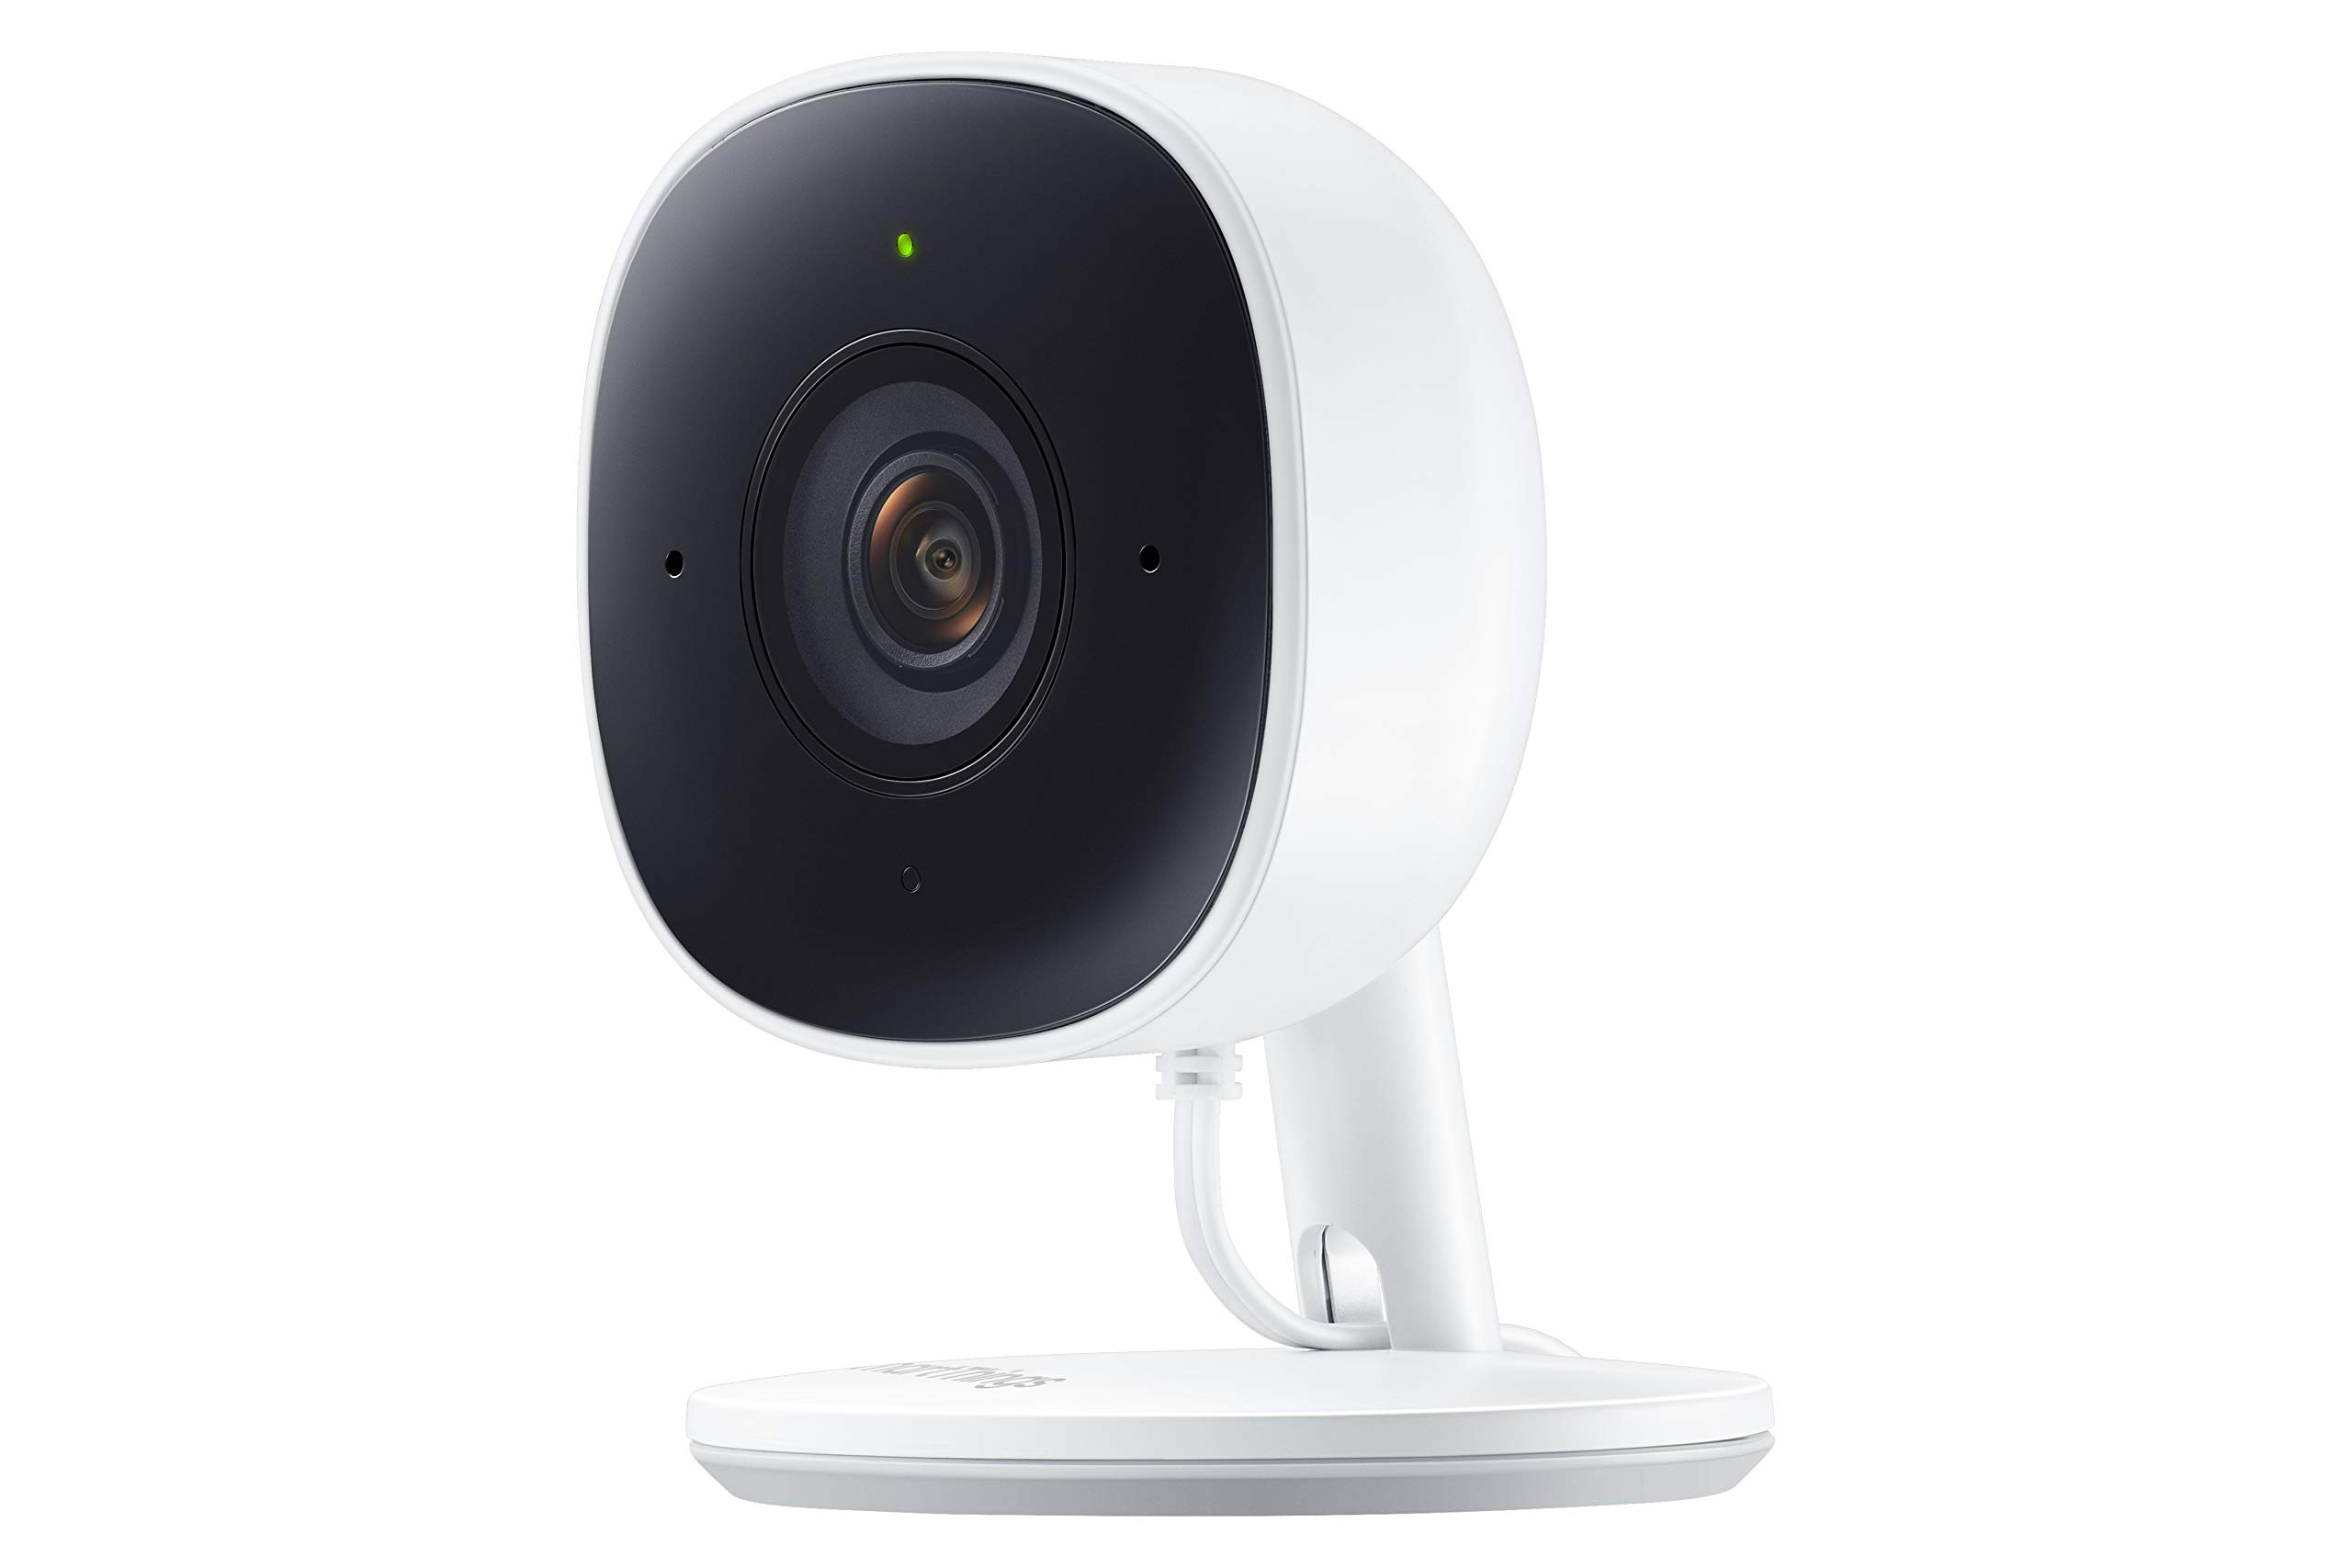 SmartThings Indoor Security Camera (GP-U999COVLBDA), 1080P HD Video with HDR, Night Vision, Advanced Motion Detection, and Two-Way Audio - Black/White by Samsung